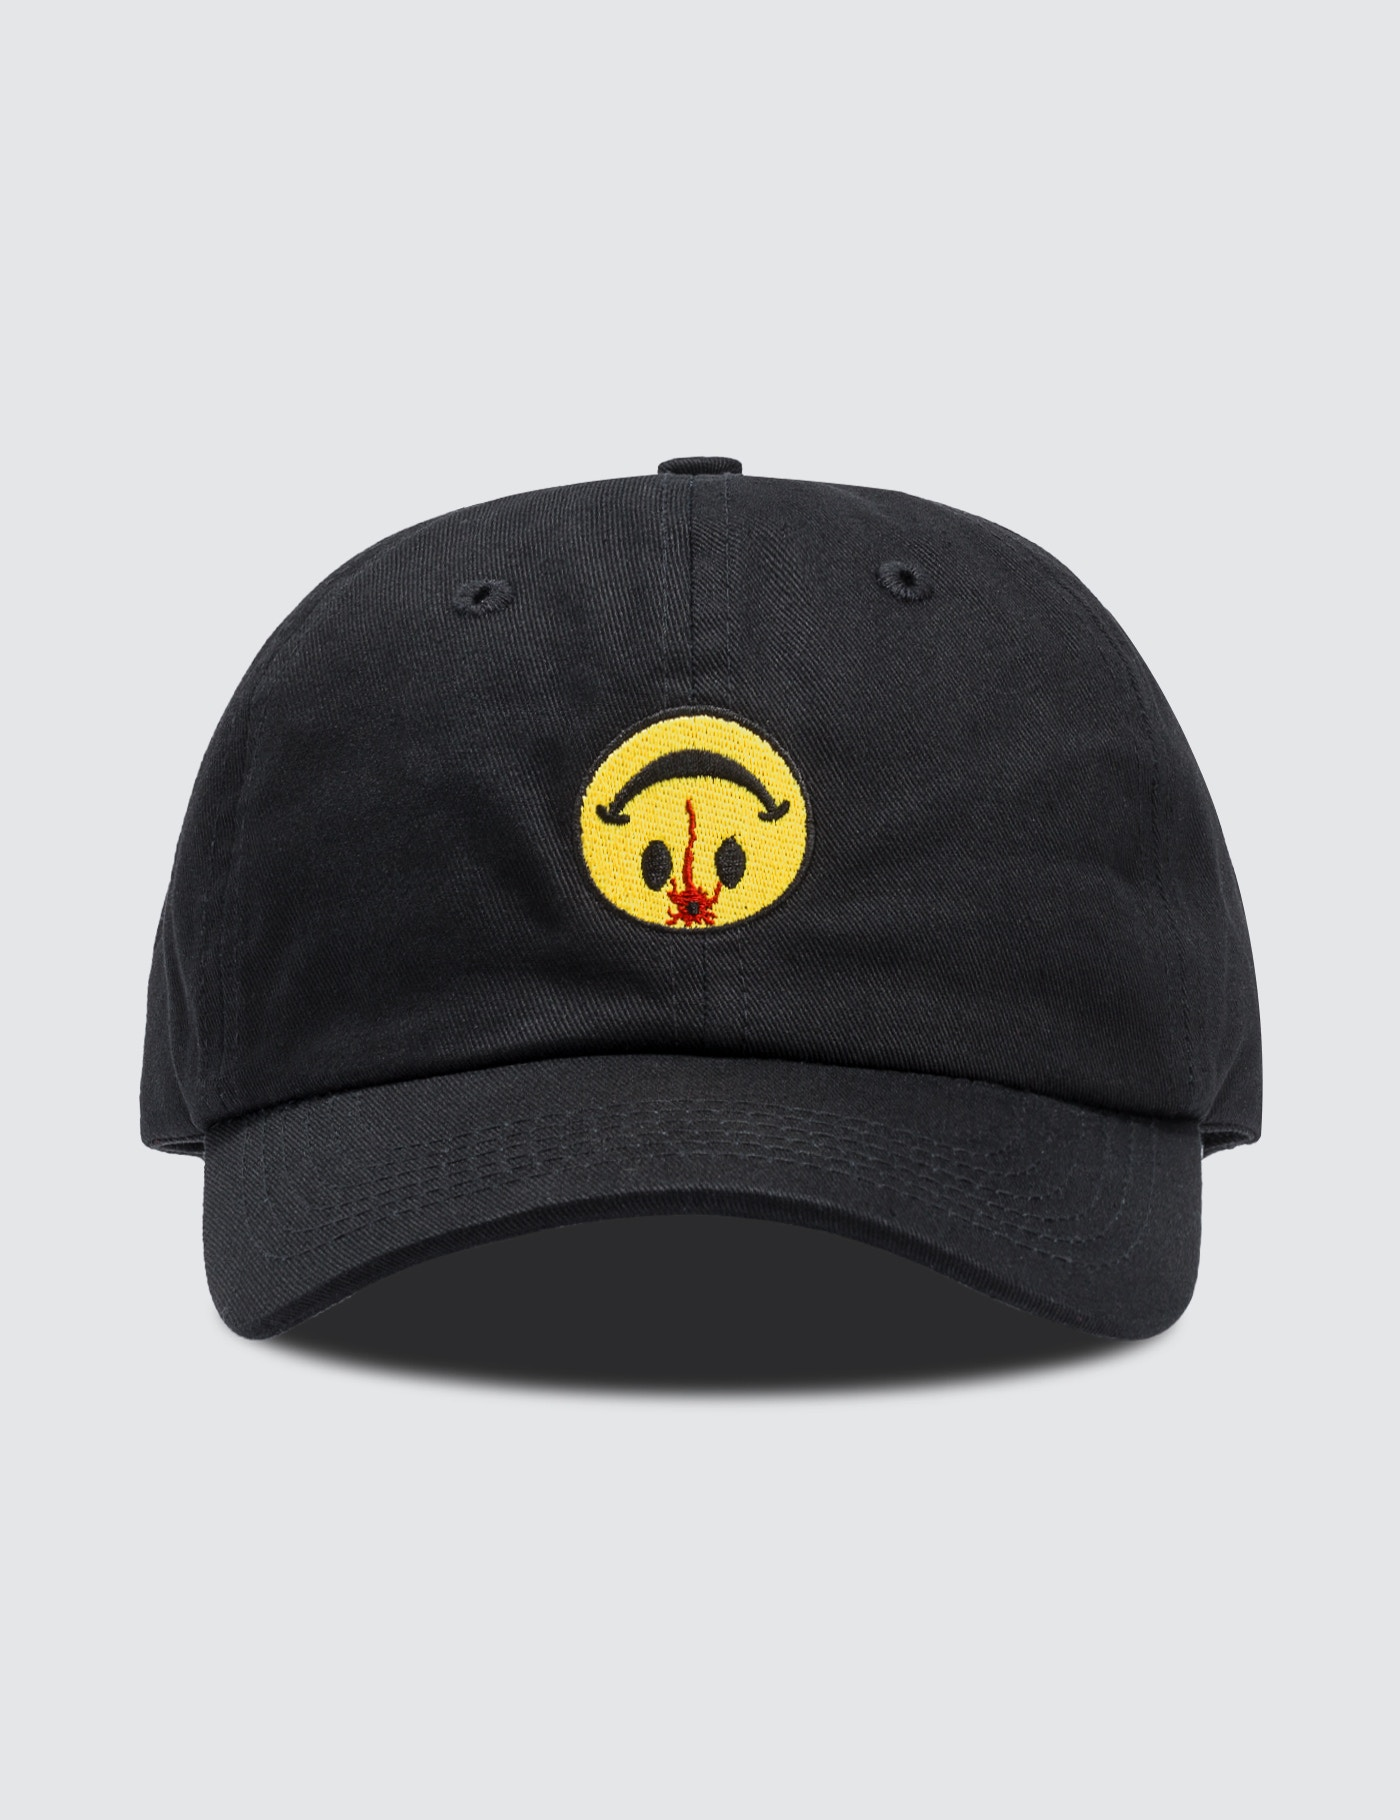 DEEP All Is Well Dad Hat  10.DEEP All Is Well Dad Hat ... 2cfd3c29779a